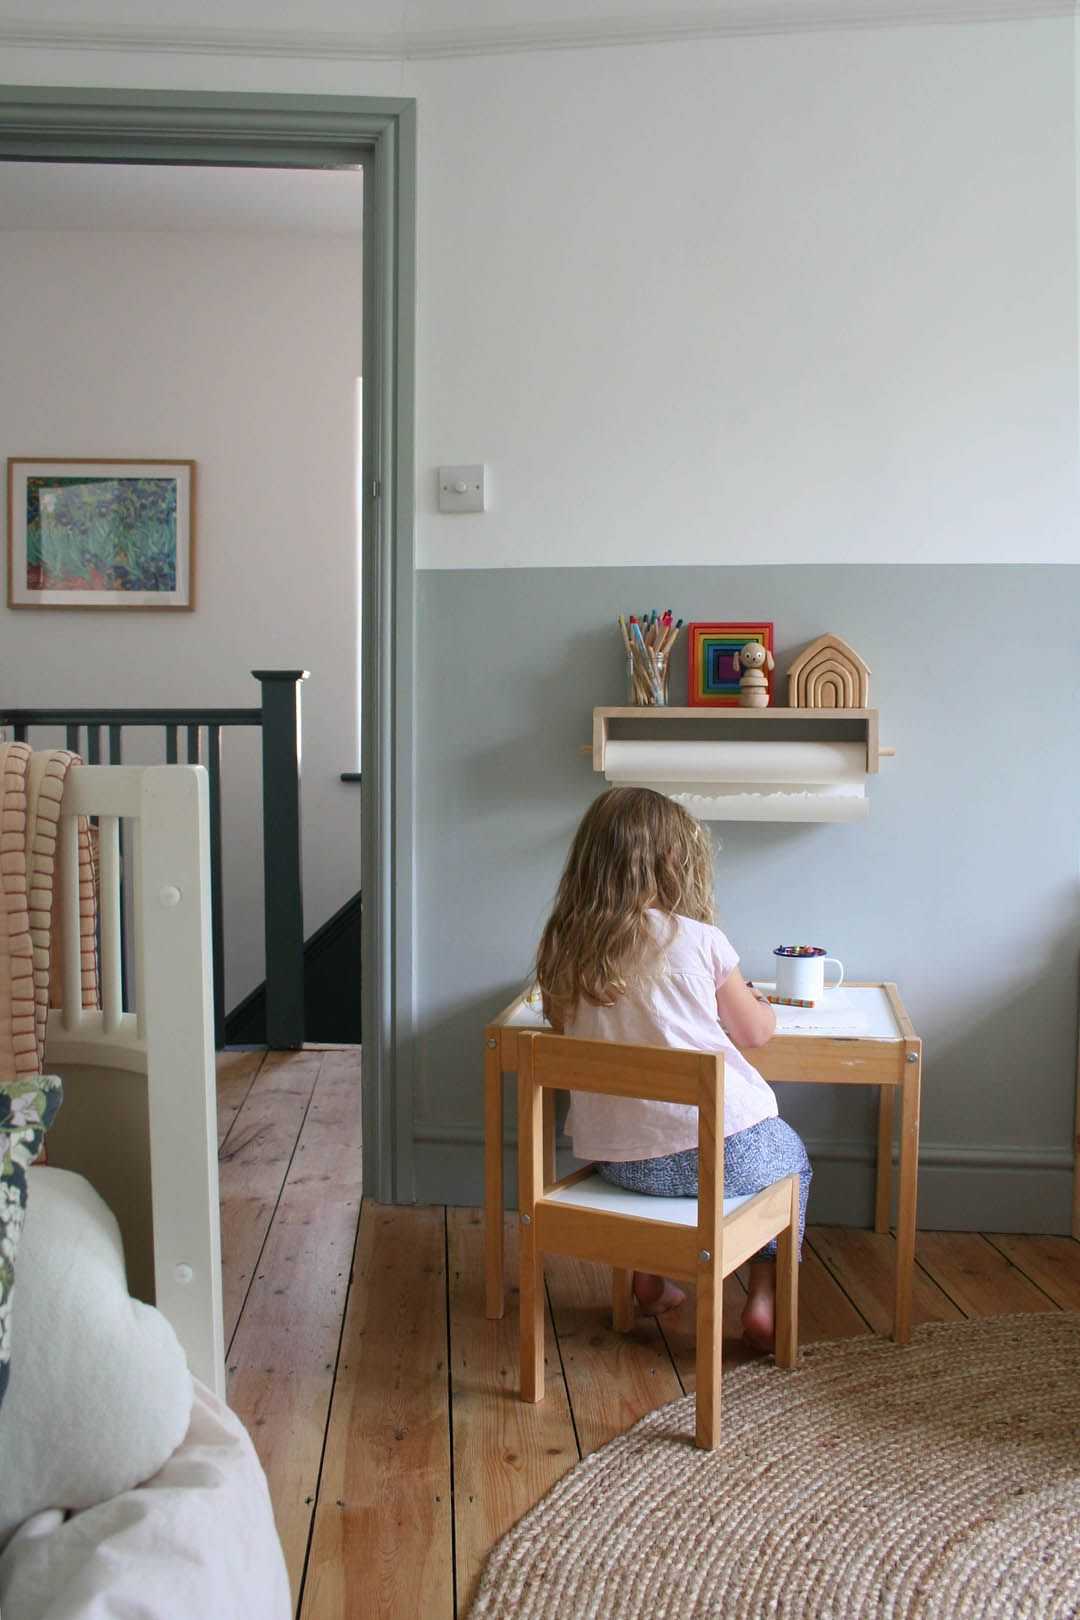 How To Do A Half Painted Wall For A Child S Bedroom Apartment Apothecary Half Painted Walls Room Wall Painting Kids Room Paint Bedroom half wall ideas